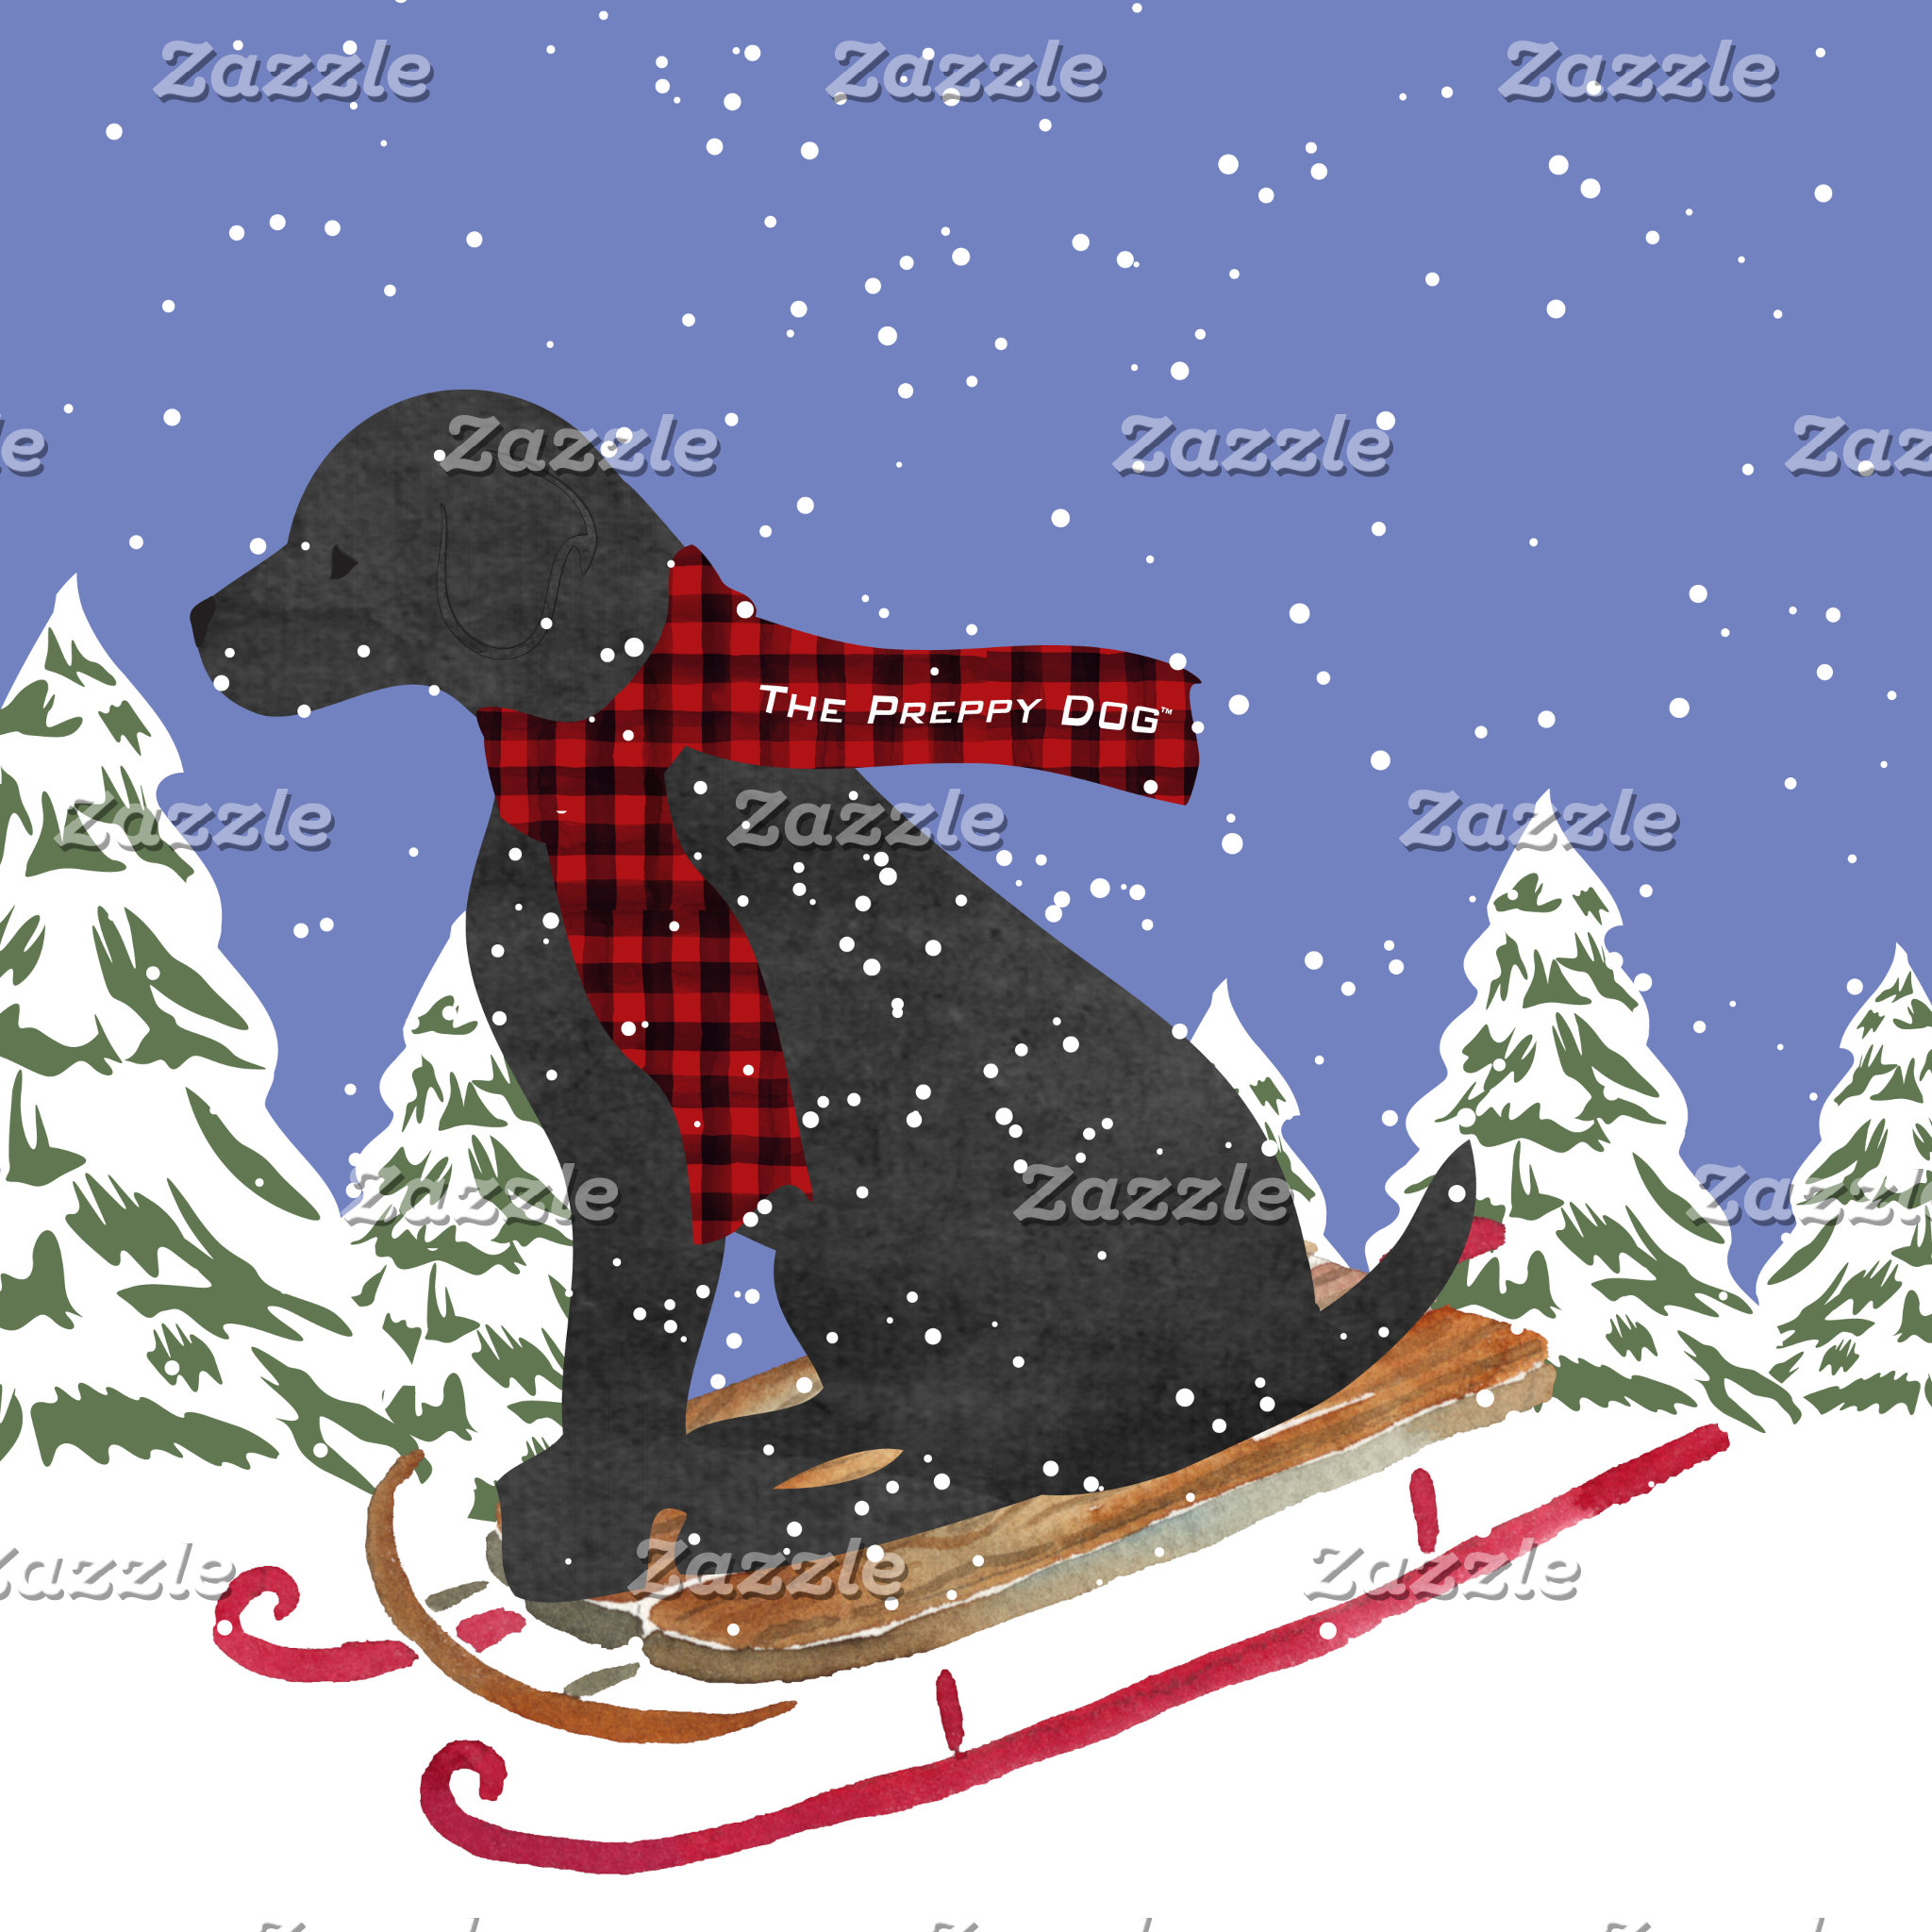 Black Lab Winter Preppy Dog Sledding